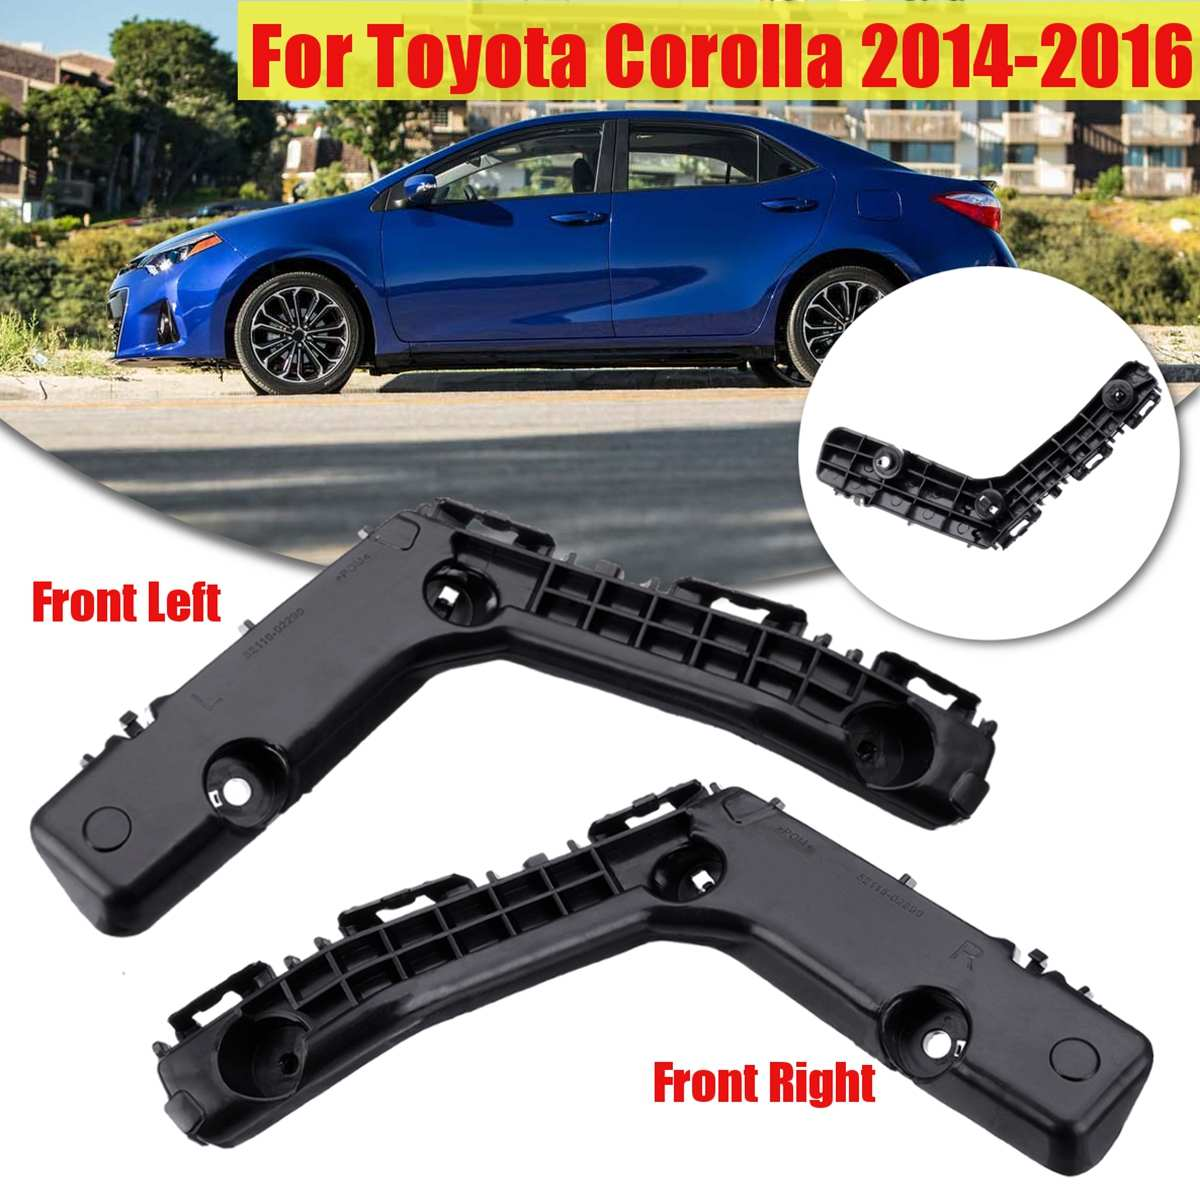 Front Left Right Bumper Spacer Bracket For Toyota Corolla 2014 2015 <font><b>2016</b></font> Black TO1042123 5211602240 image